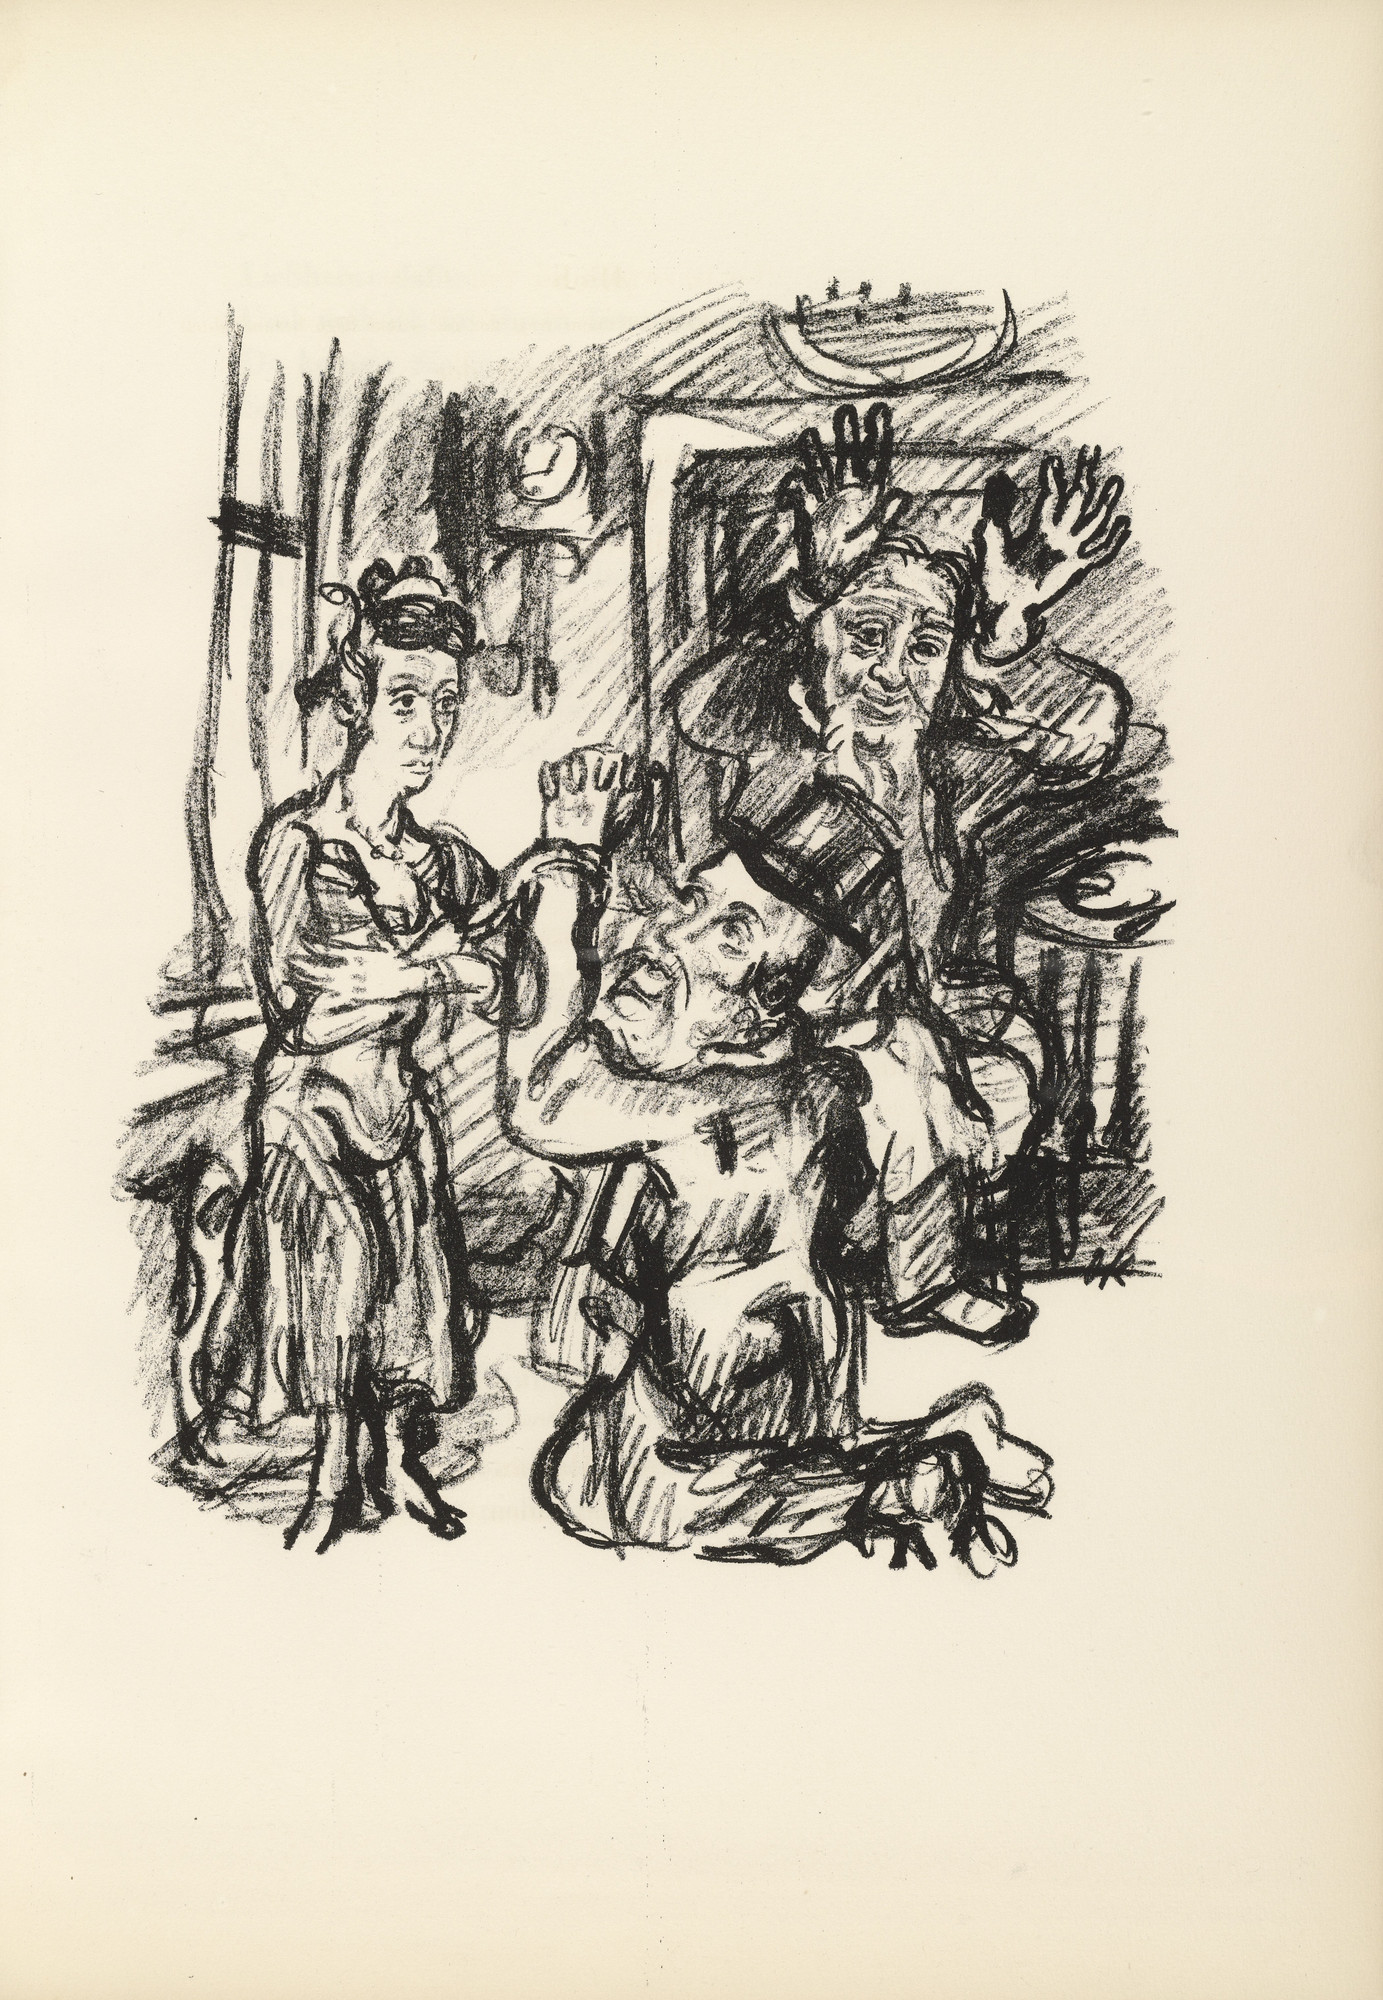 Oskar Kokoschka. Job, Anima and the Contortionist (Hiob, Anima und der Kautschukmann) (plate, page 27) from Hiob (Job). 1917 (executed 1916/17)